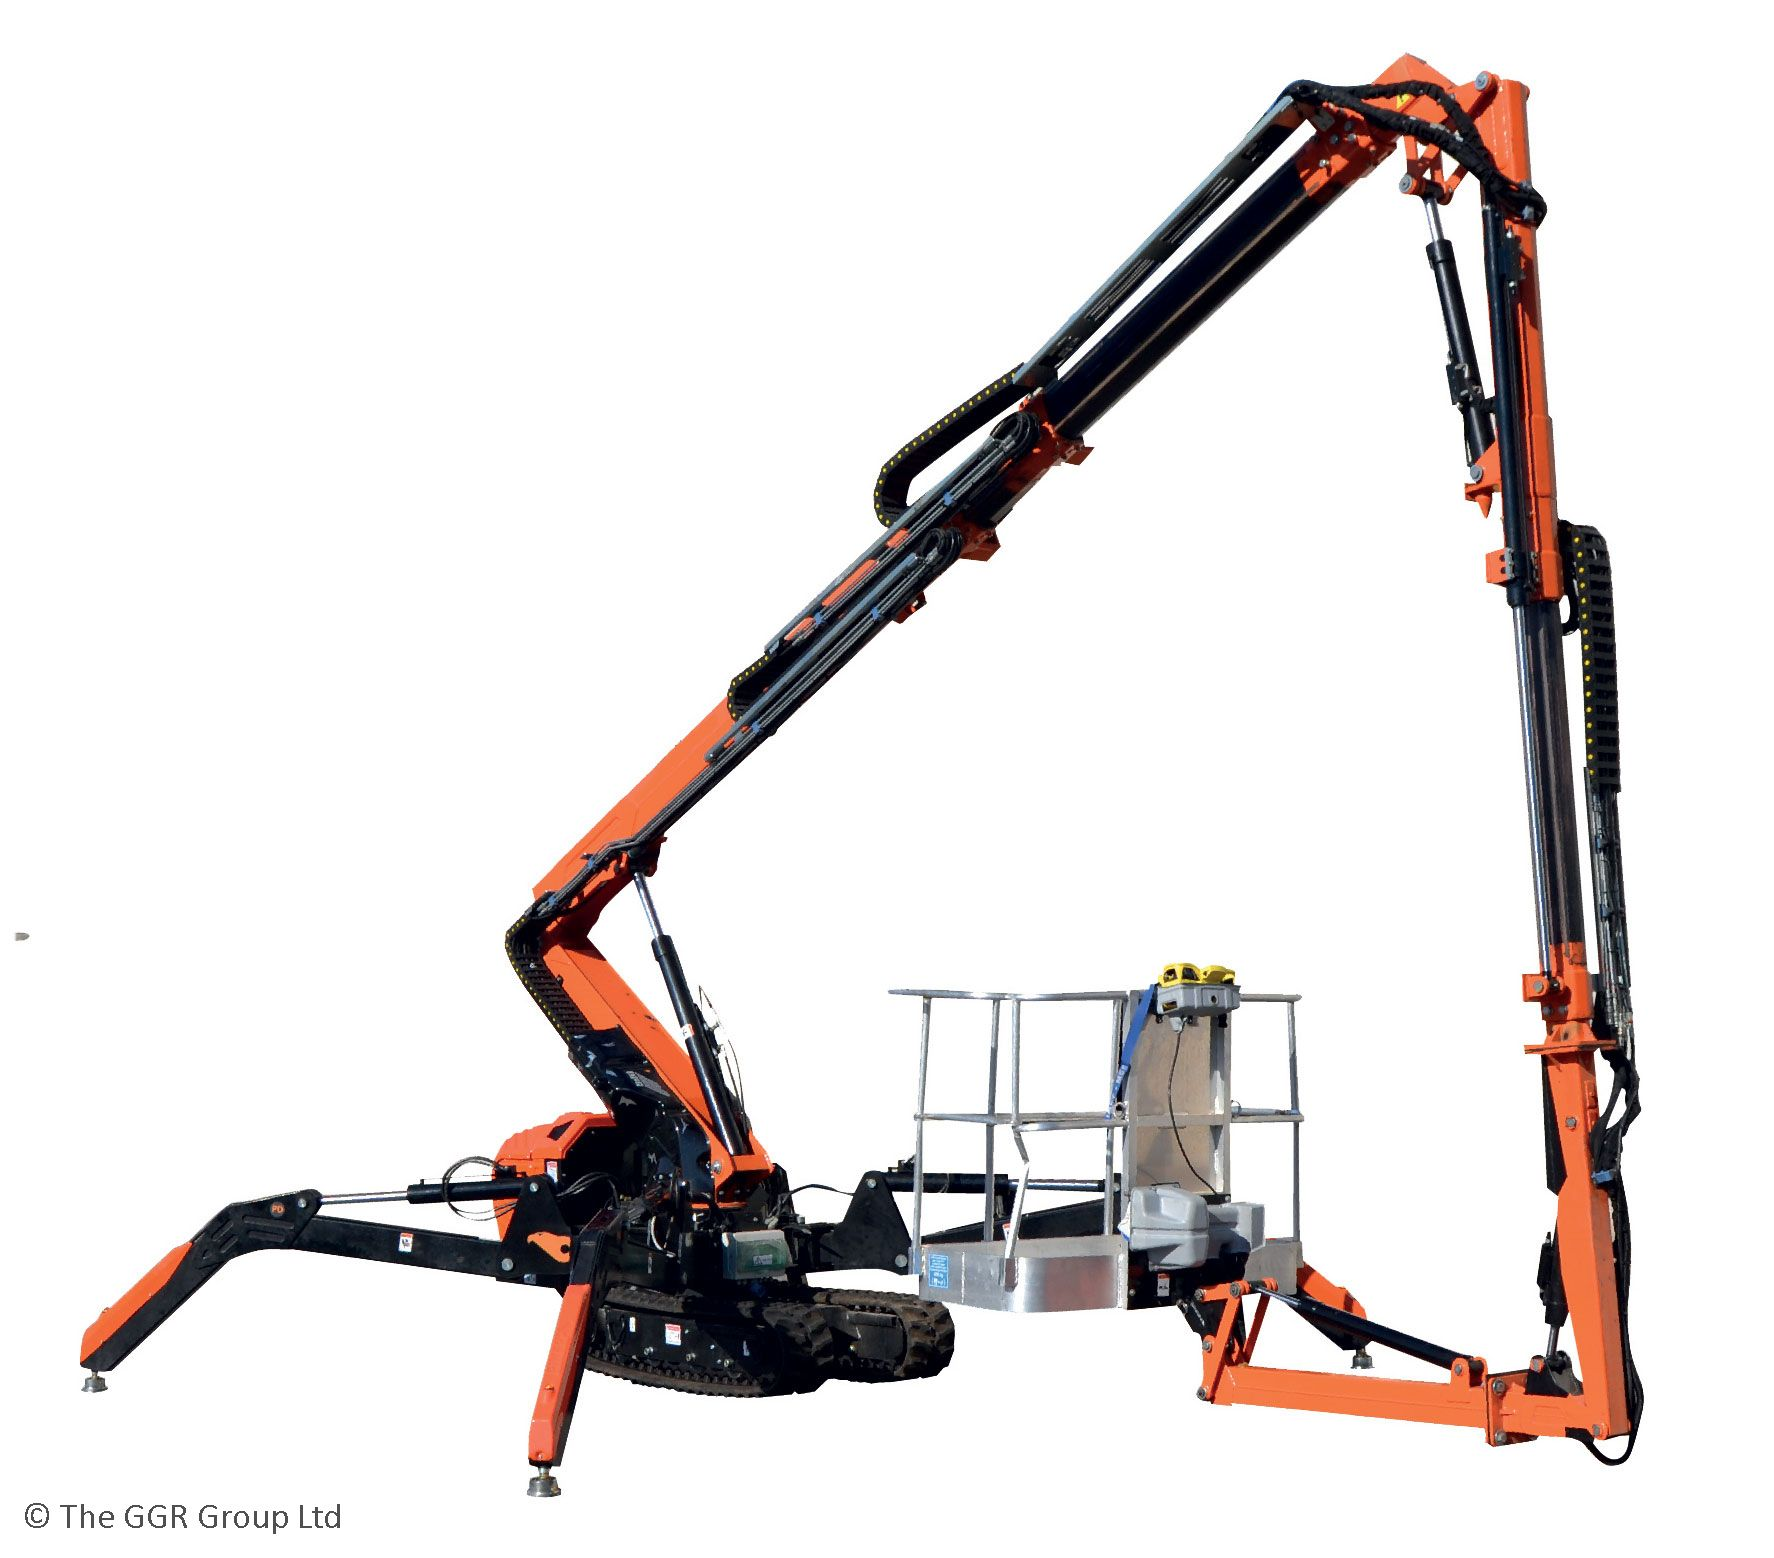 Cormidi KB19-4 as an under-bridge access platform with 4 metres of downreach, they only machines of its kind to have a reverse basket function for under-bridge work.